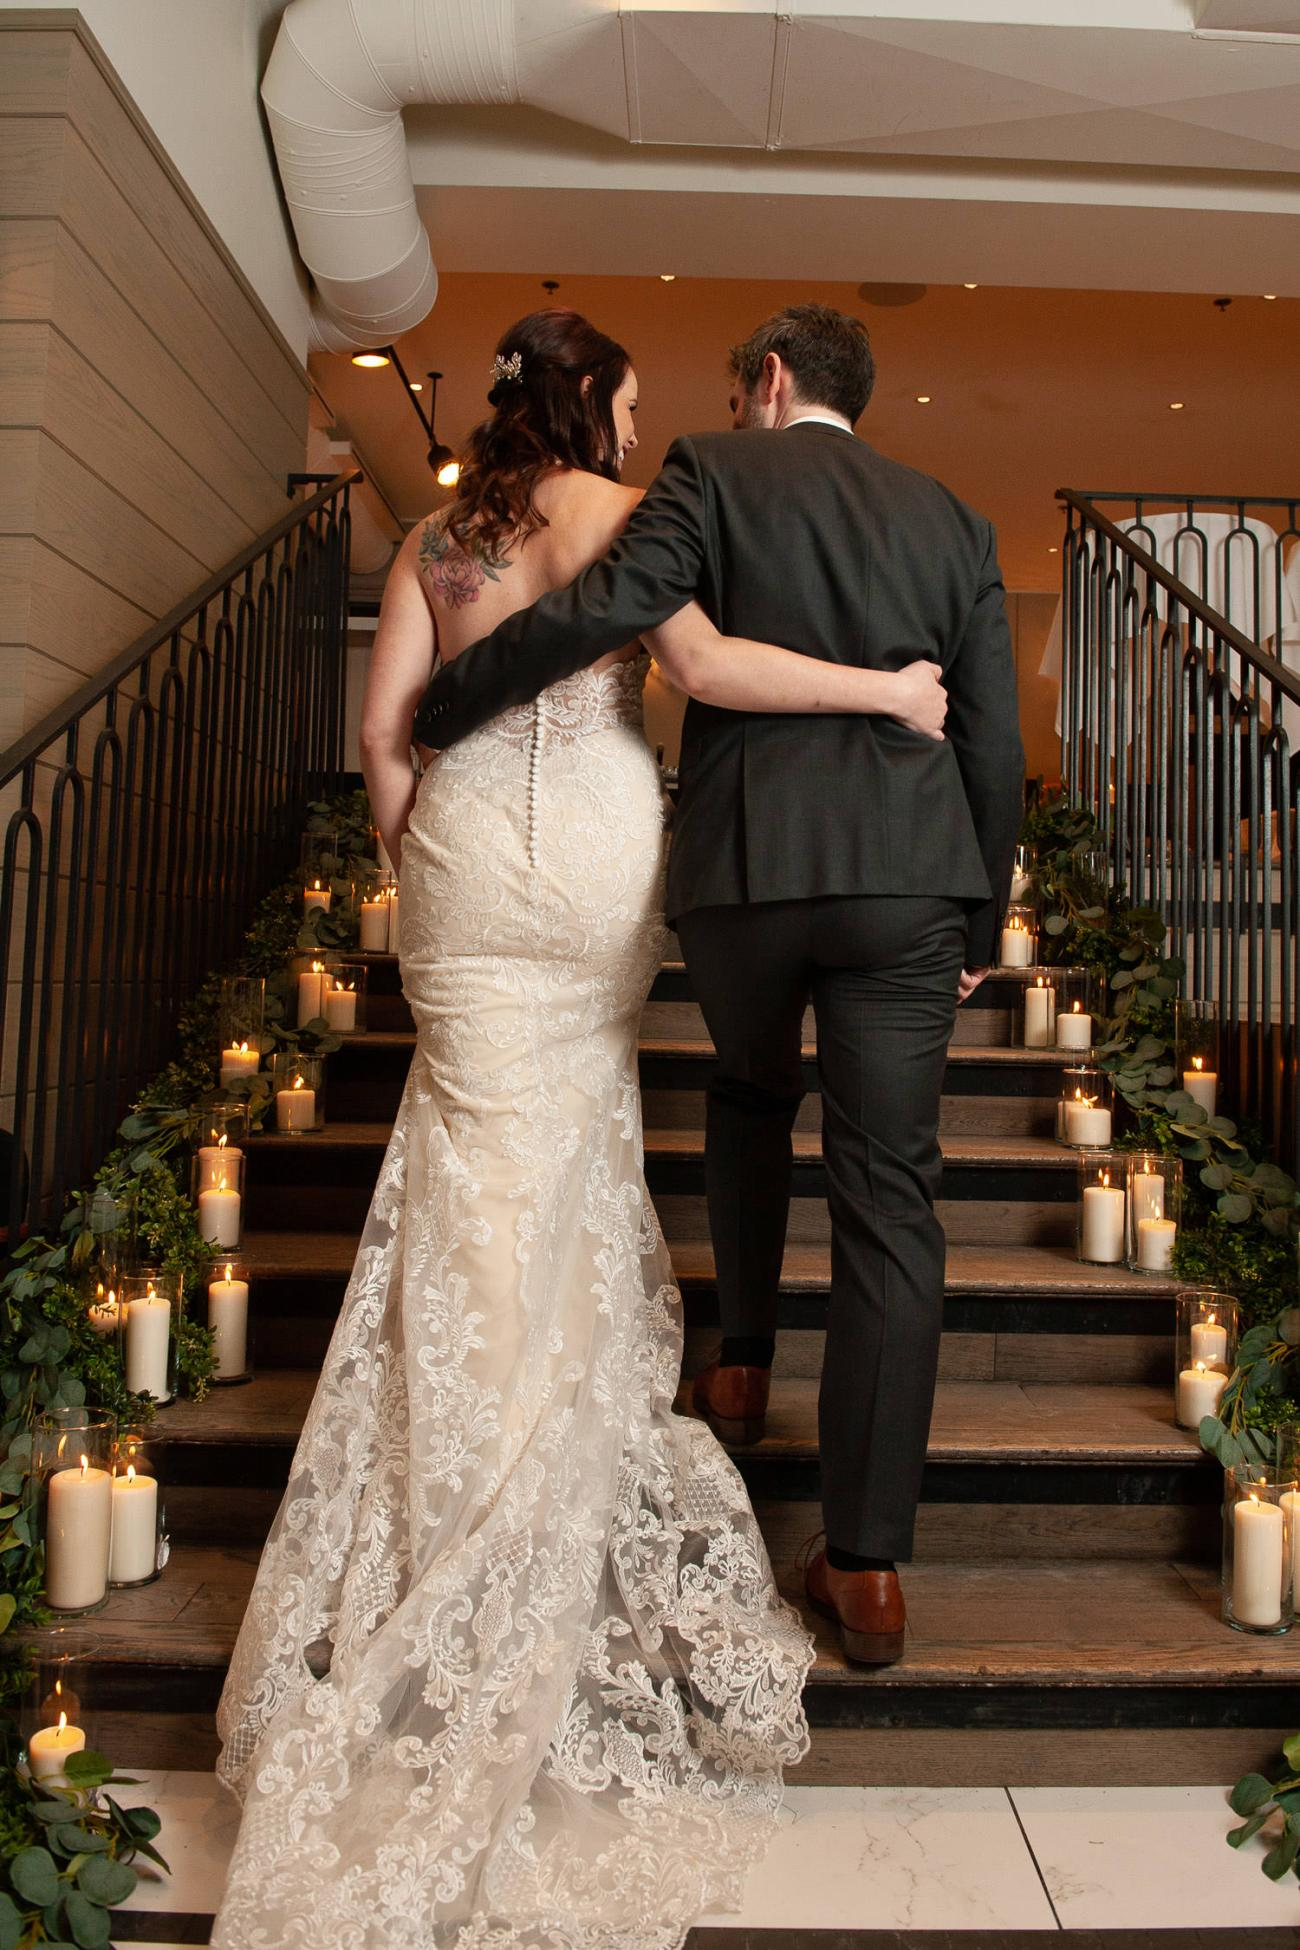 Winter wedding at Alforno in Calgary captured by Tara Whittaker Photography